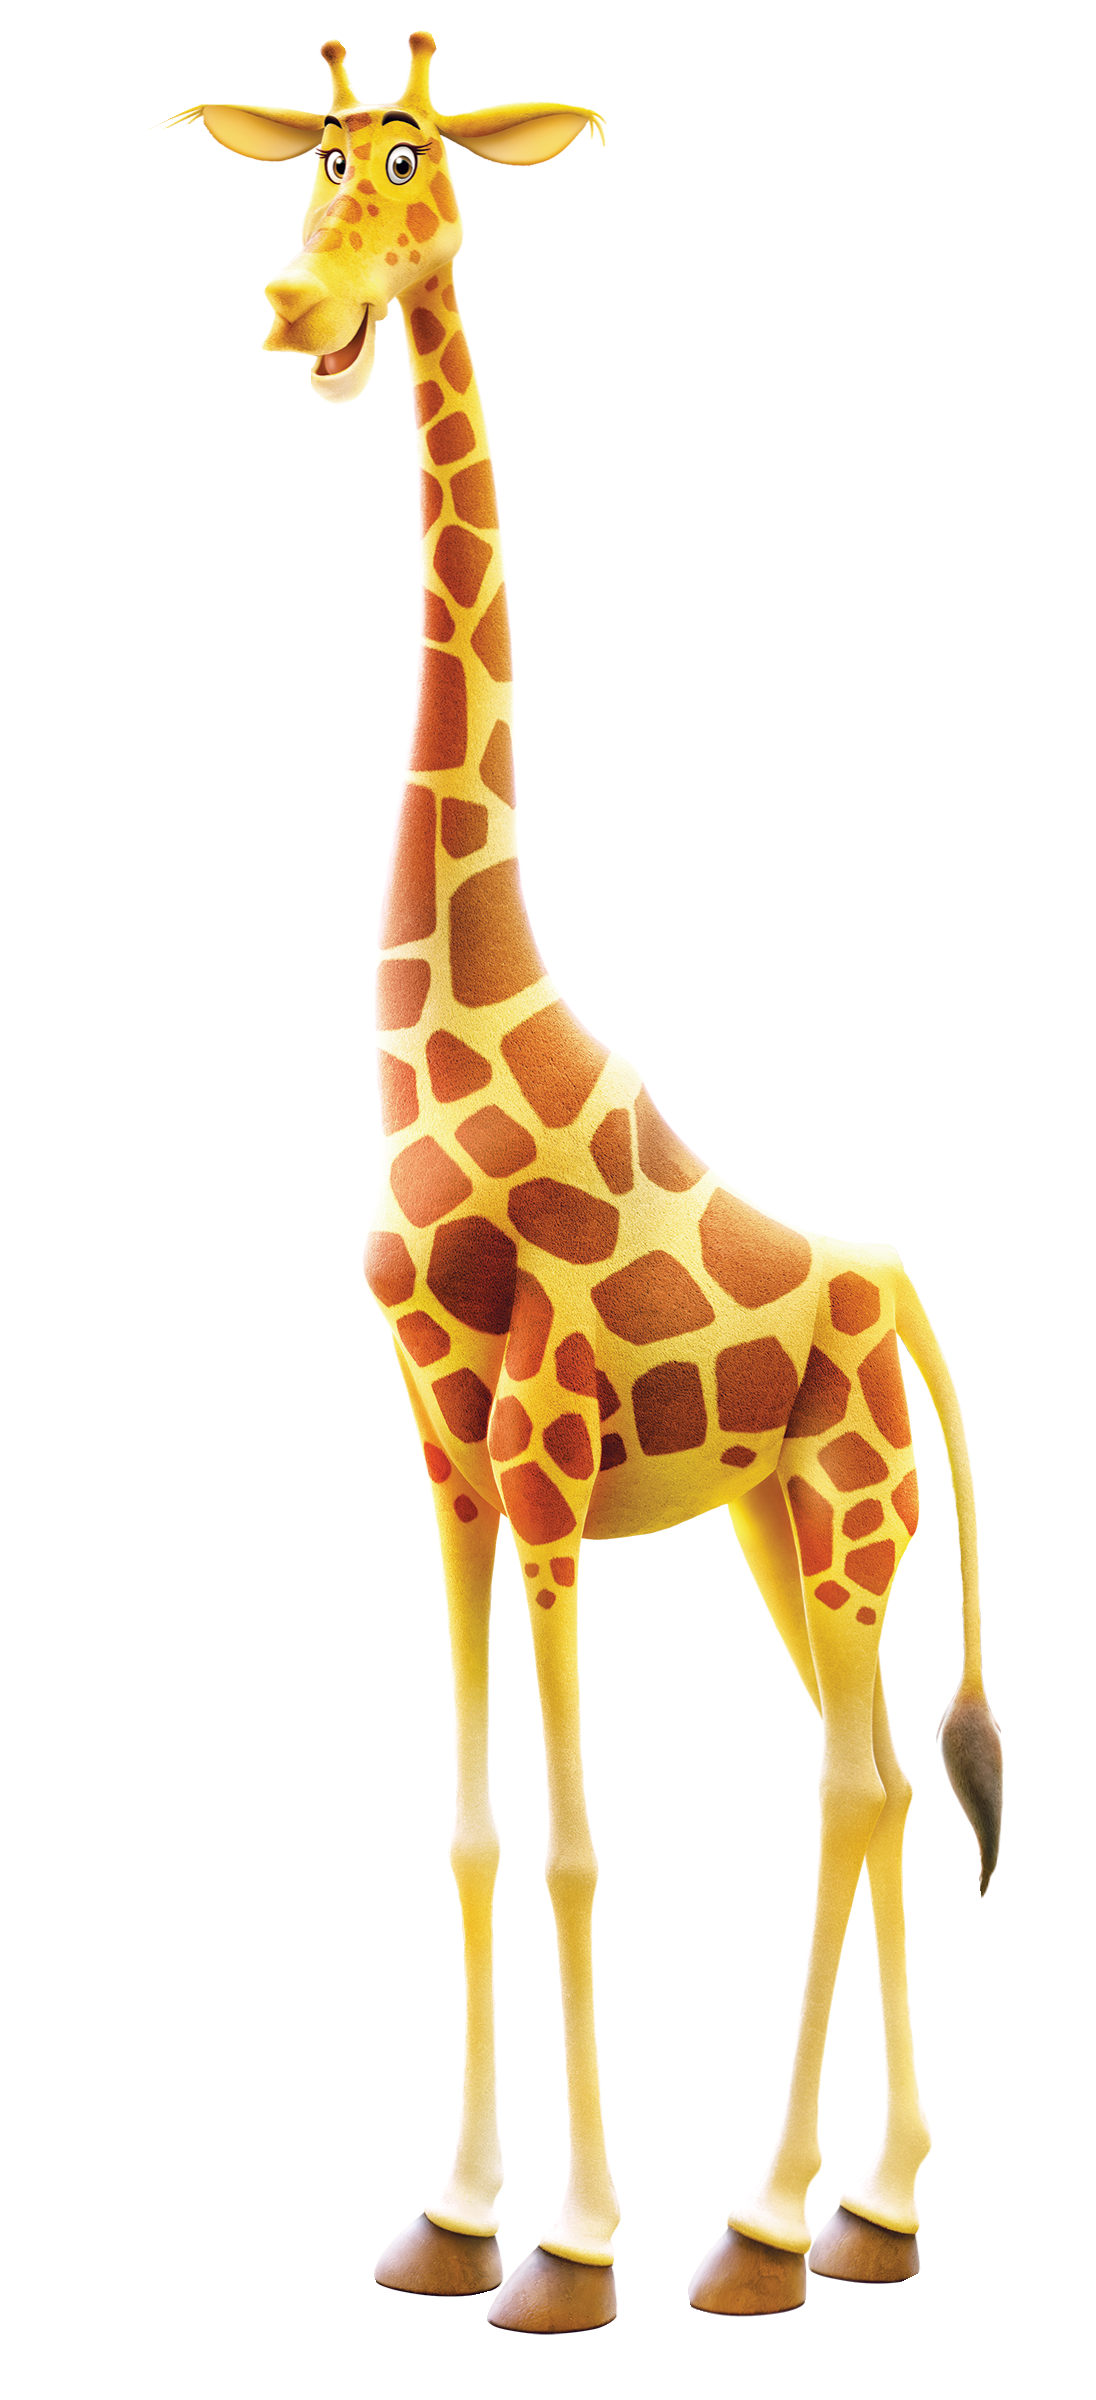 Day 5_Savanna Giraffe.png